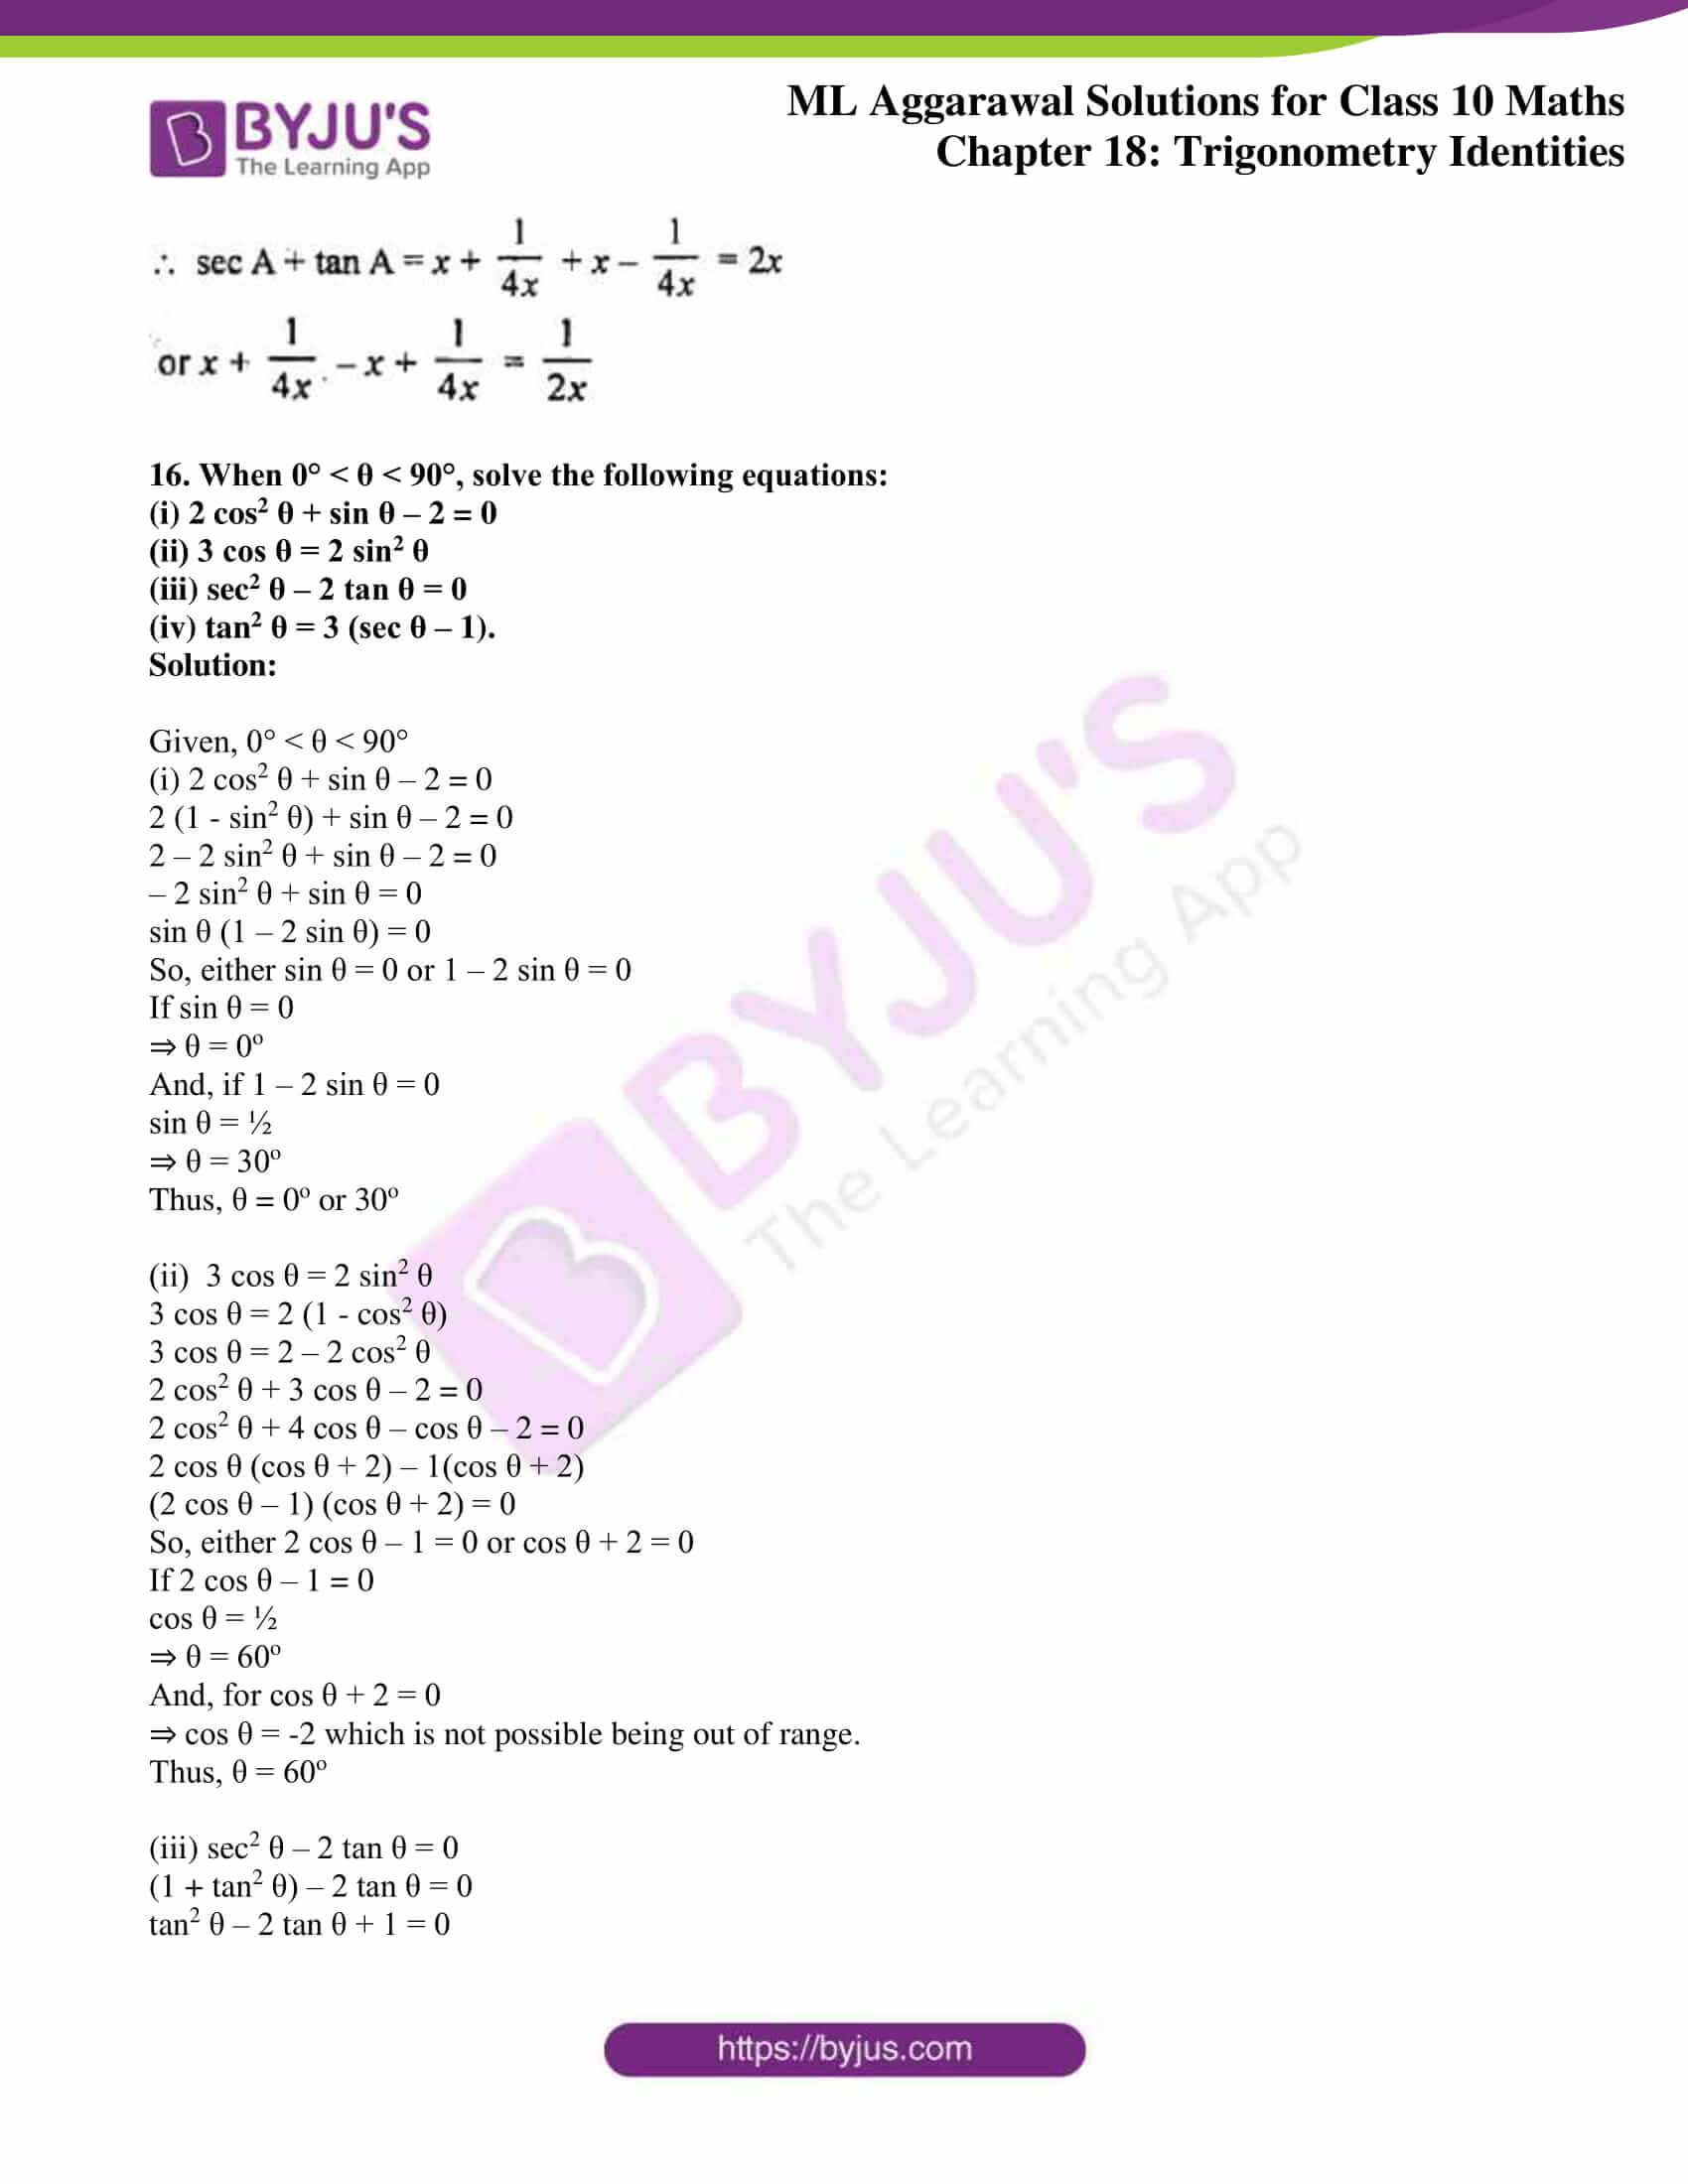 ml aggarwal solutions for class 10 maths chapter 18 40